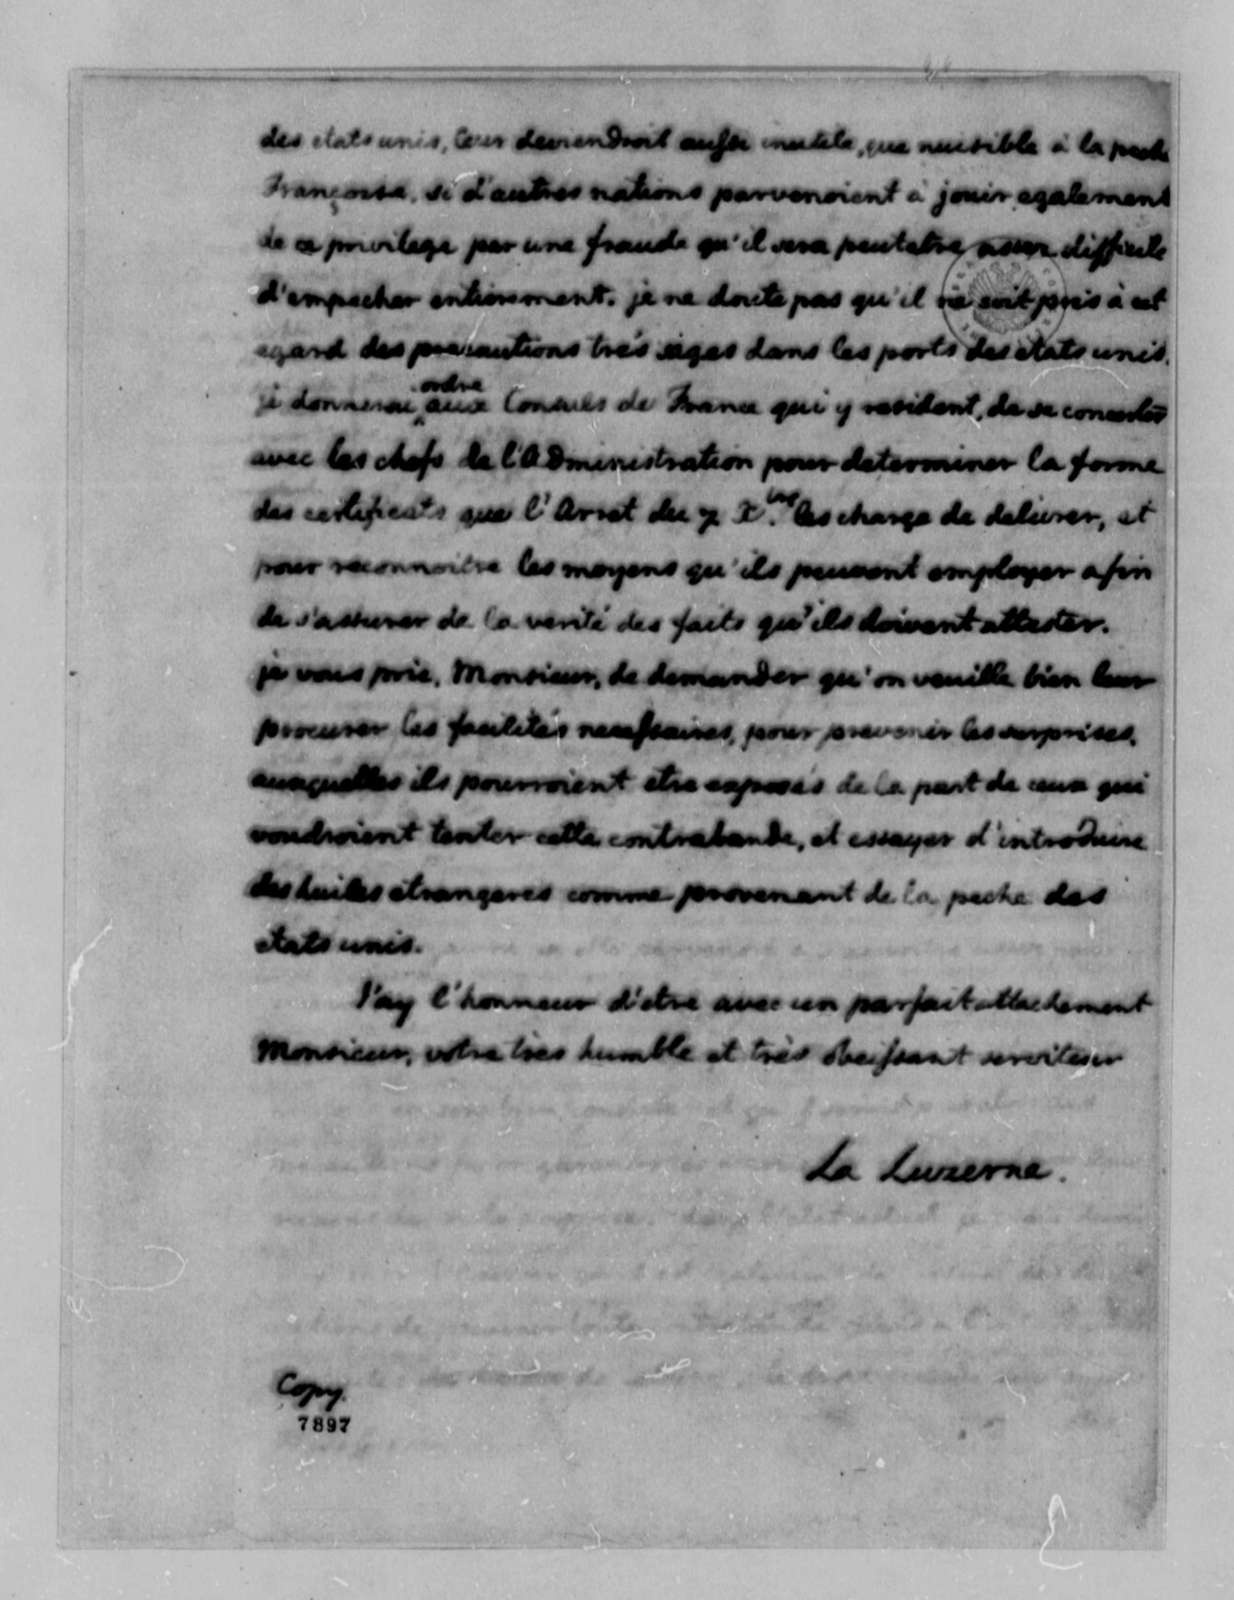 La Luzerne to Thomas Jefferson, January 18, 1789, Maritime and Fish Commerce; in French; with Copy